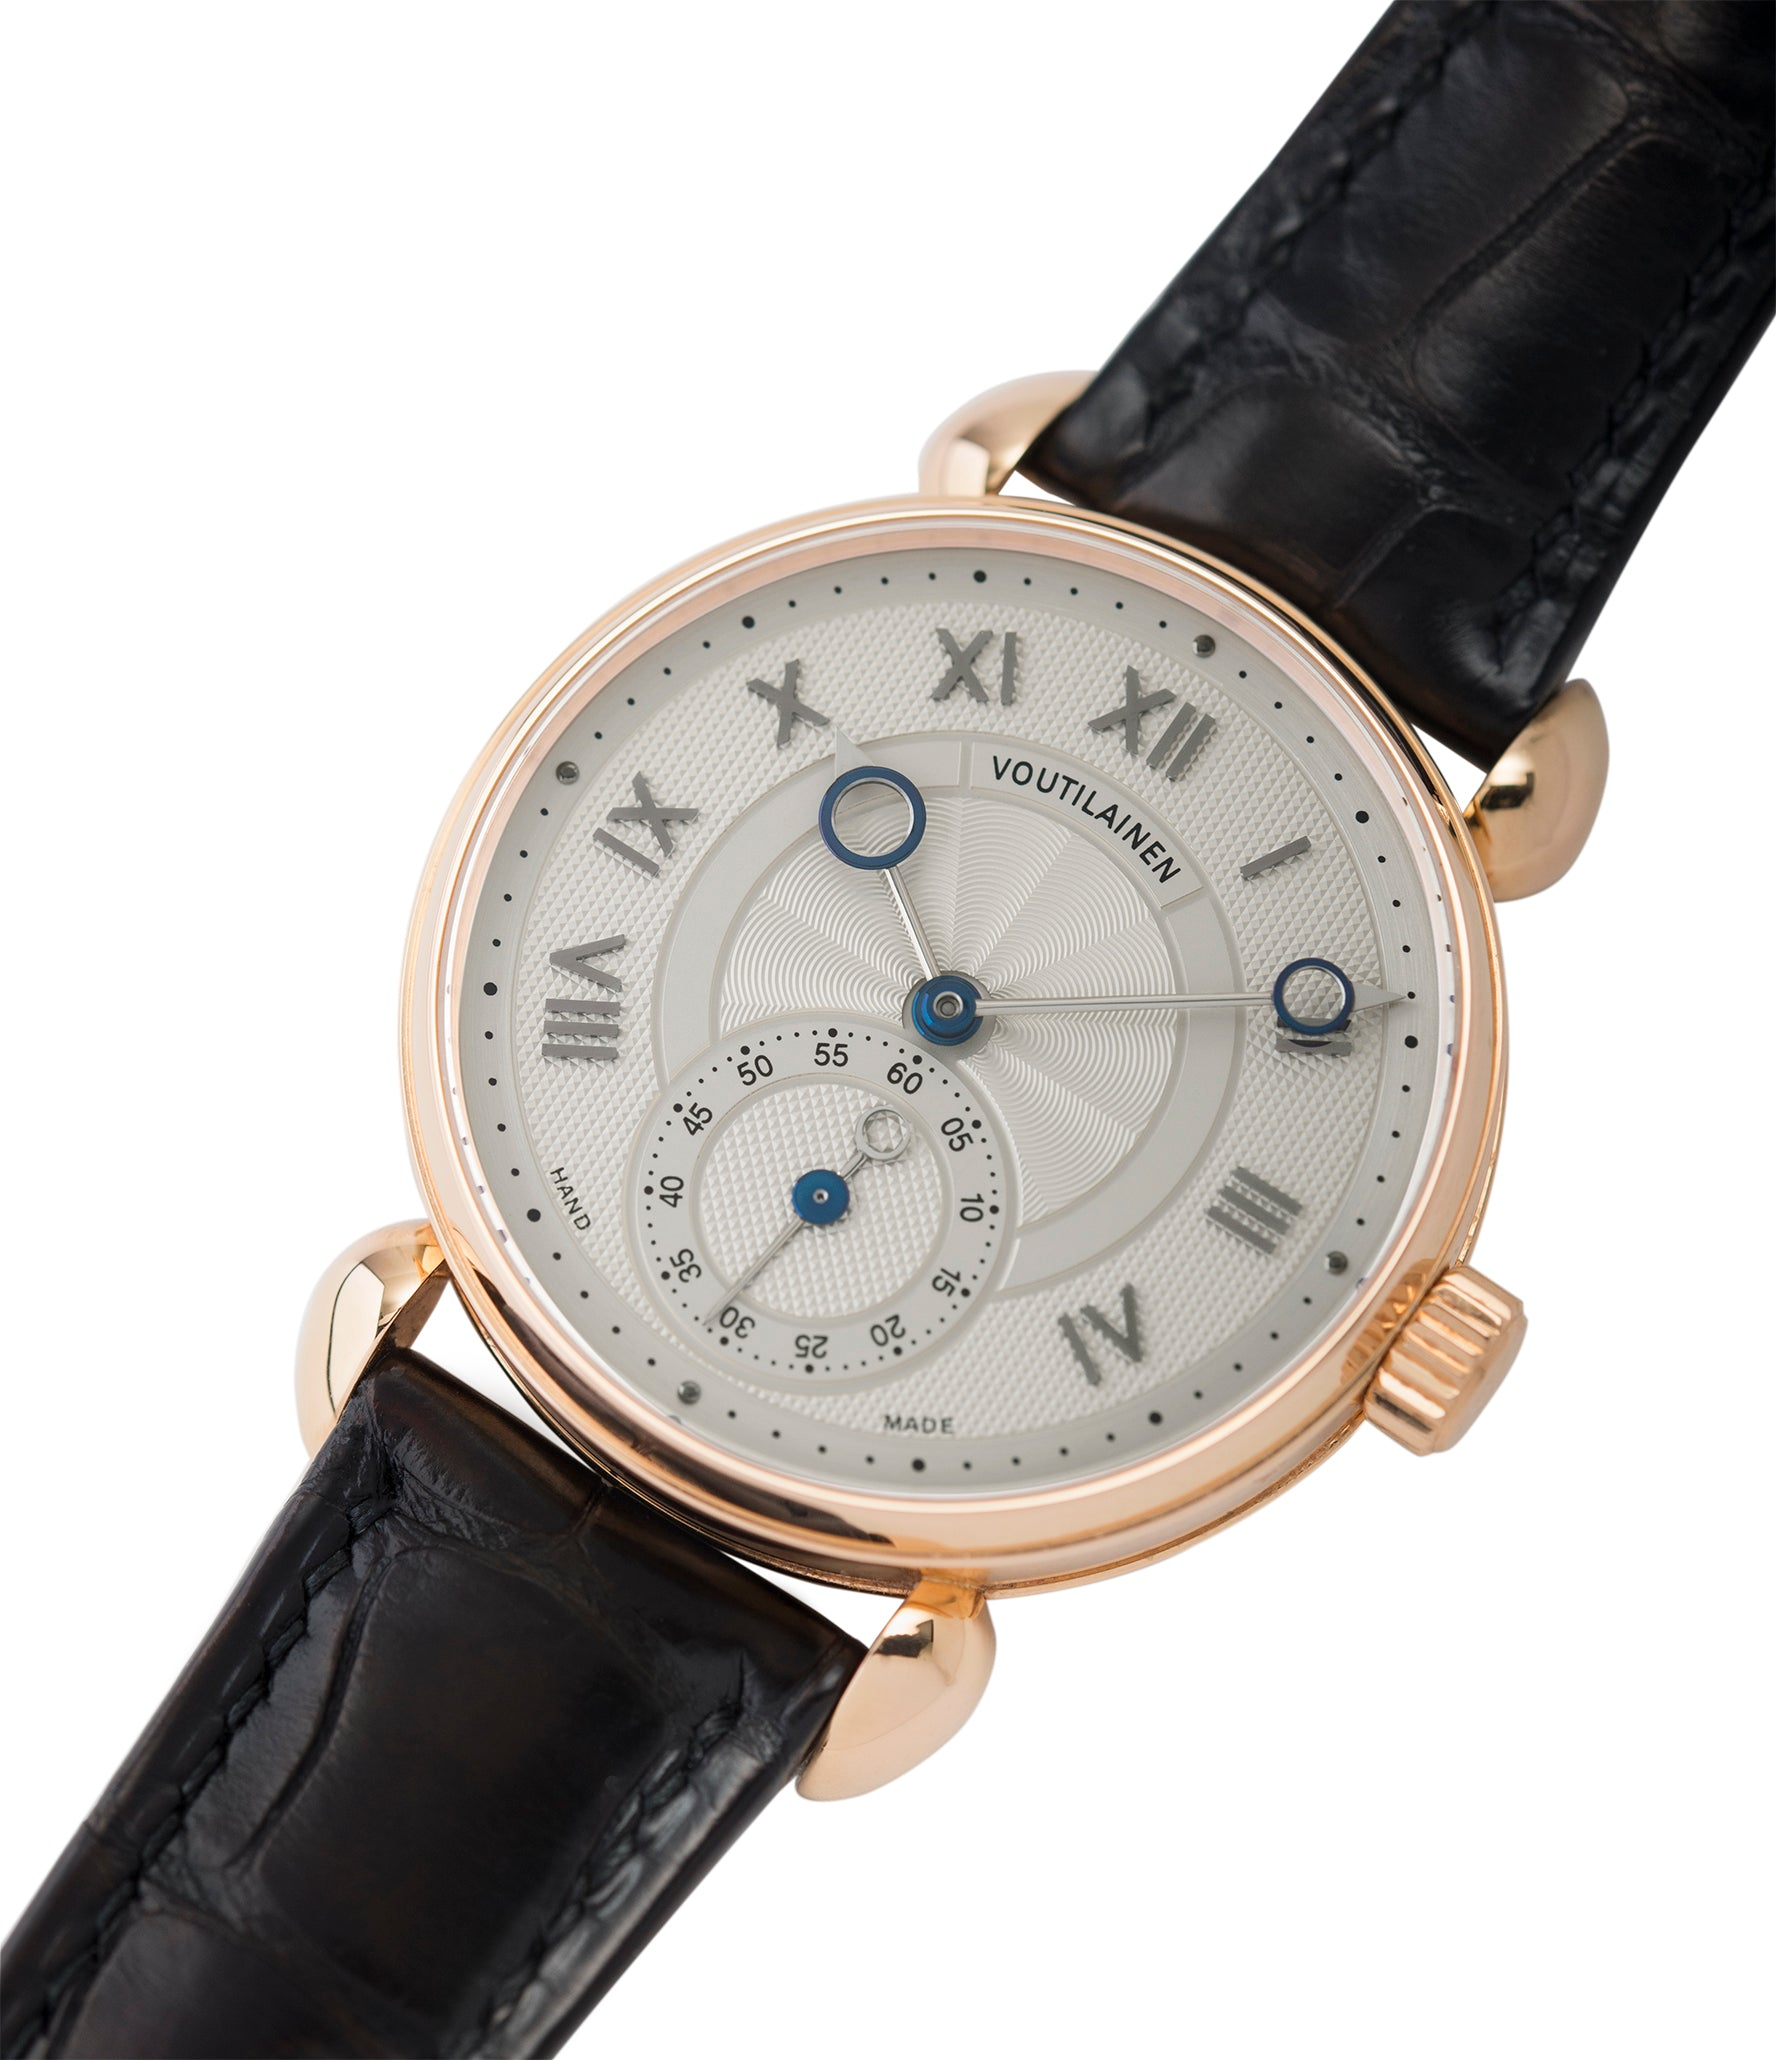 for sale Voutilainen Observatoire Limited Edition rose gold rare dress watch for sale online at A Collected Man London endorsed seller of independent watchmaker